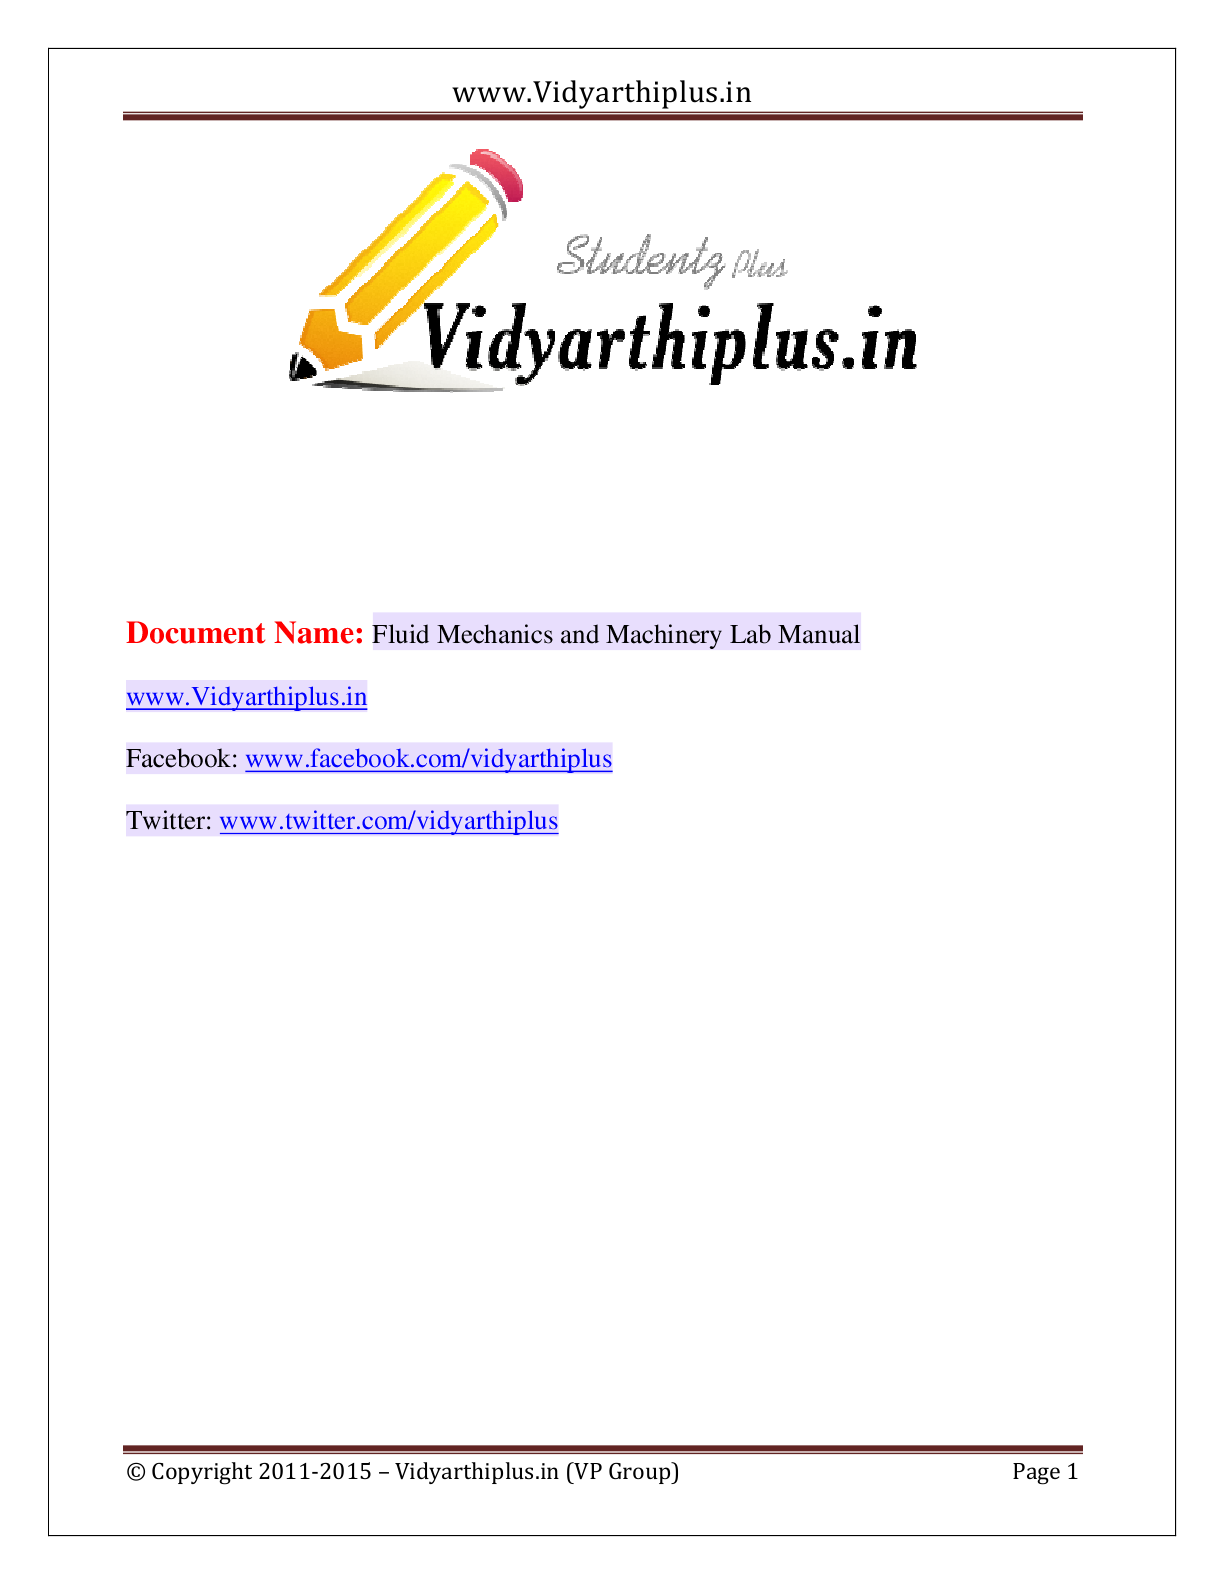 fluid mechanics and machinery lab manual vidyarthiplus v blog rh vidyarthiplus in fluid mechanics lab manual for civil engineering pdf fluid mechanics lab manual by shah alam